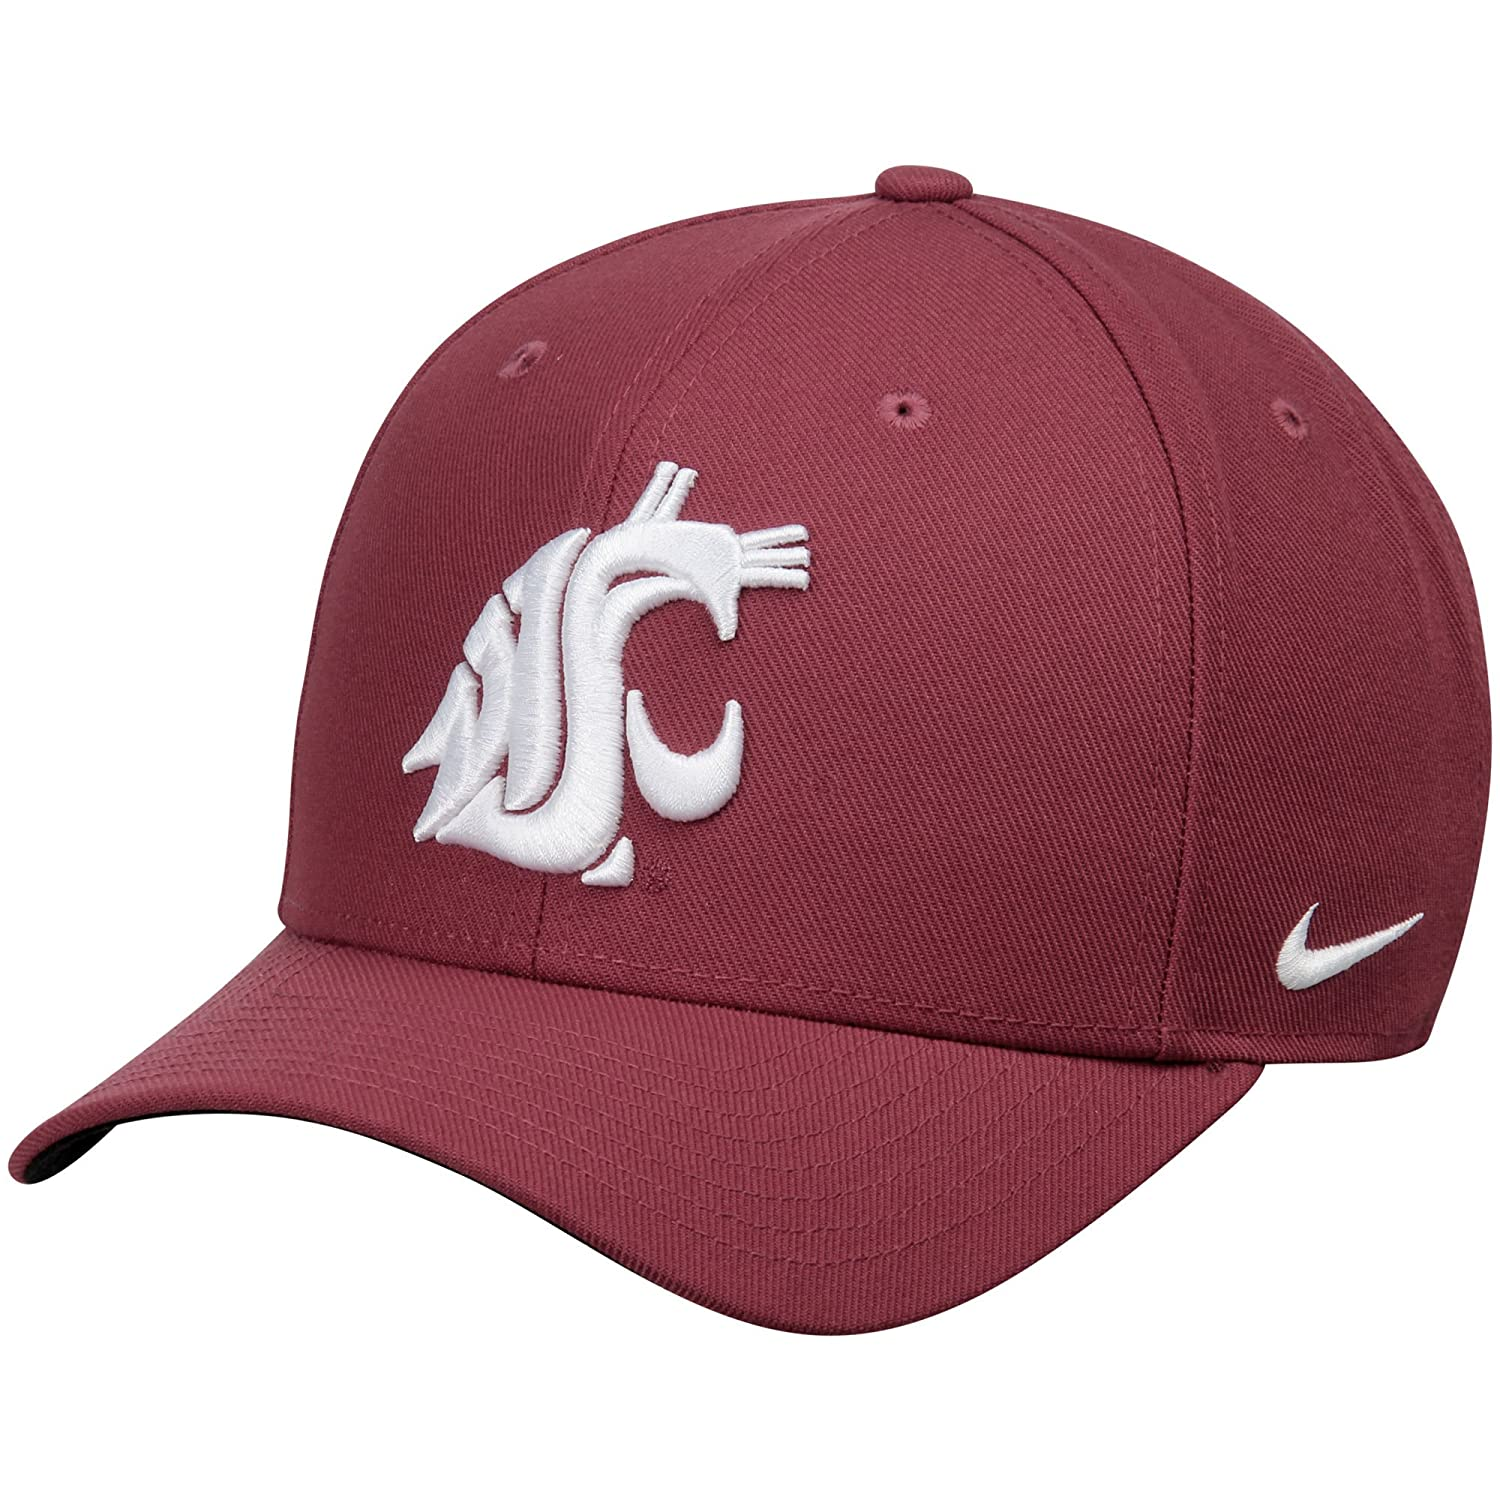 quality design 72847 18176 ... norway amazon nike washington state cougars wool classic performance  adjustable hat crimson sports outdoors a6b5a a567a